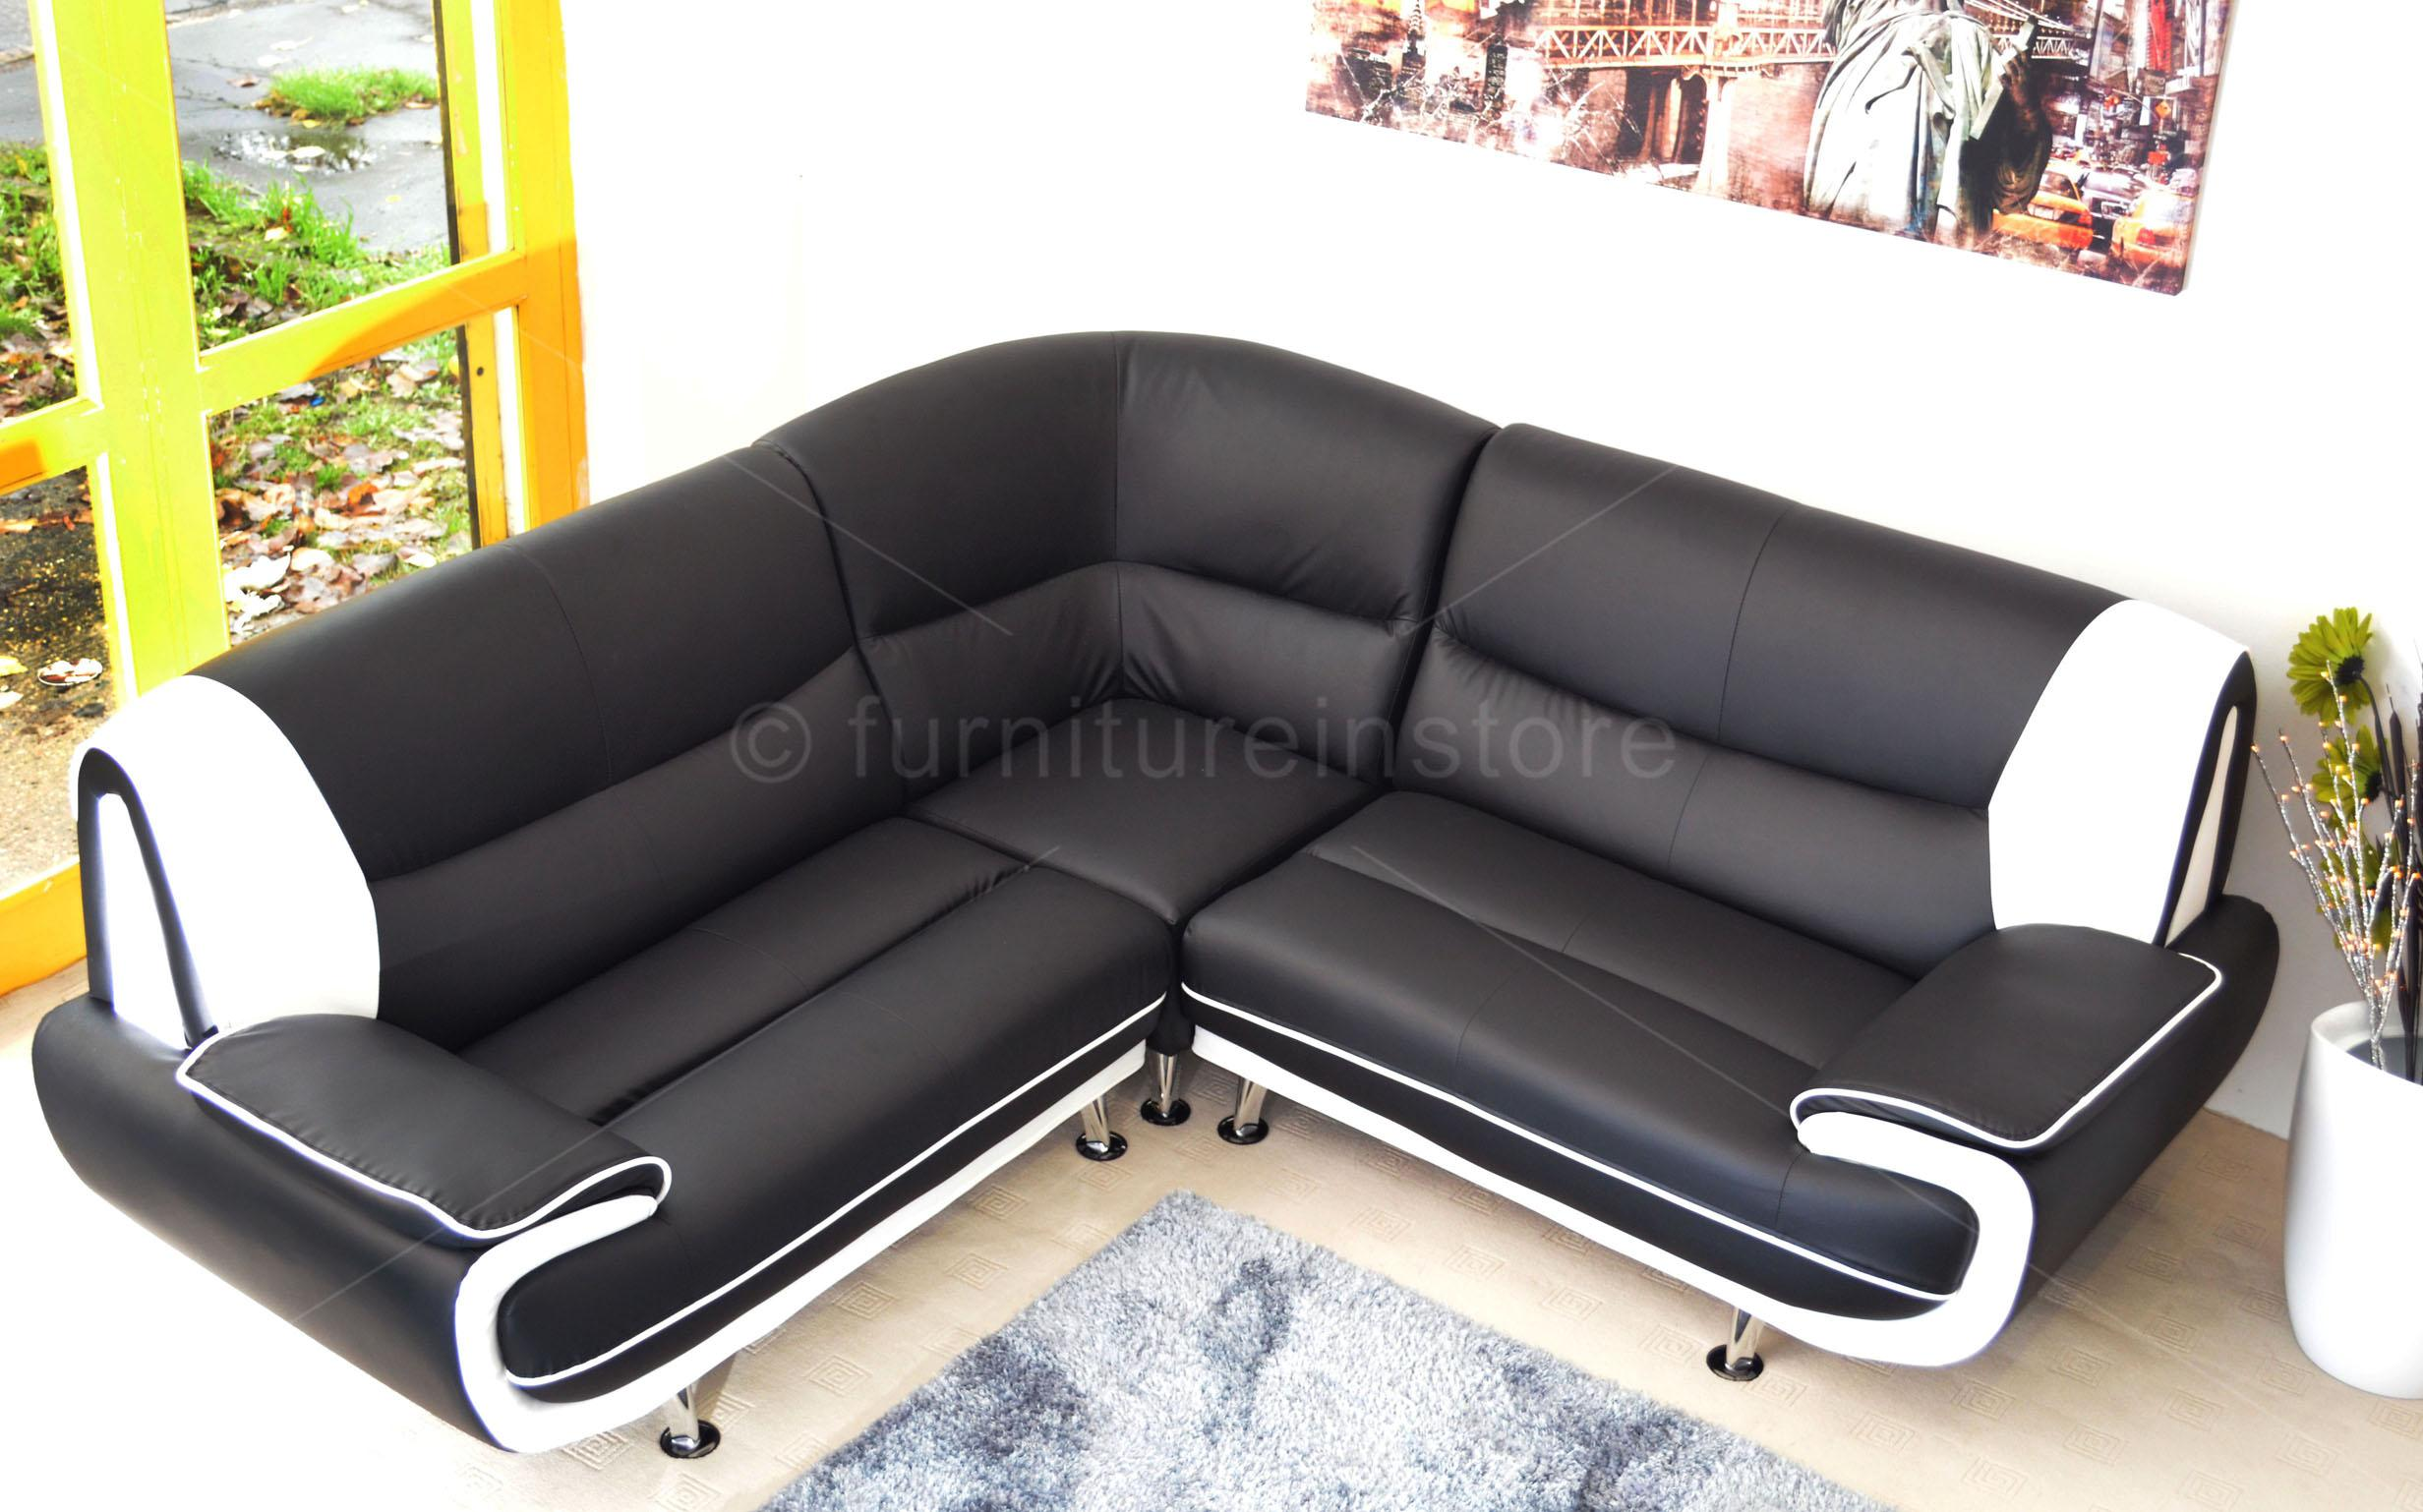 ebay used corner sofa bed 8 wide table faux leather passero sofas setttee